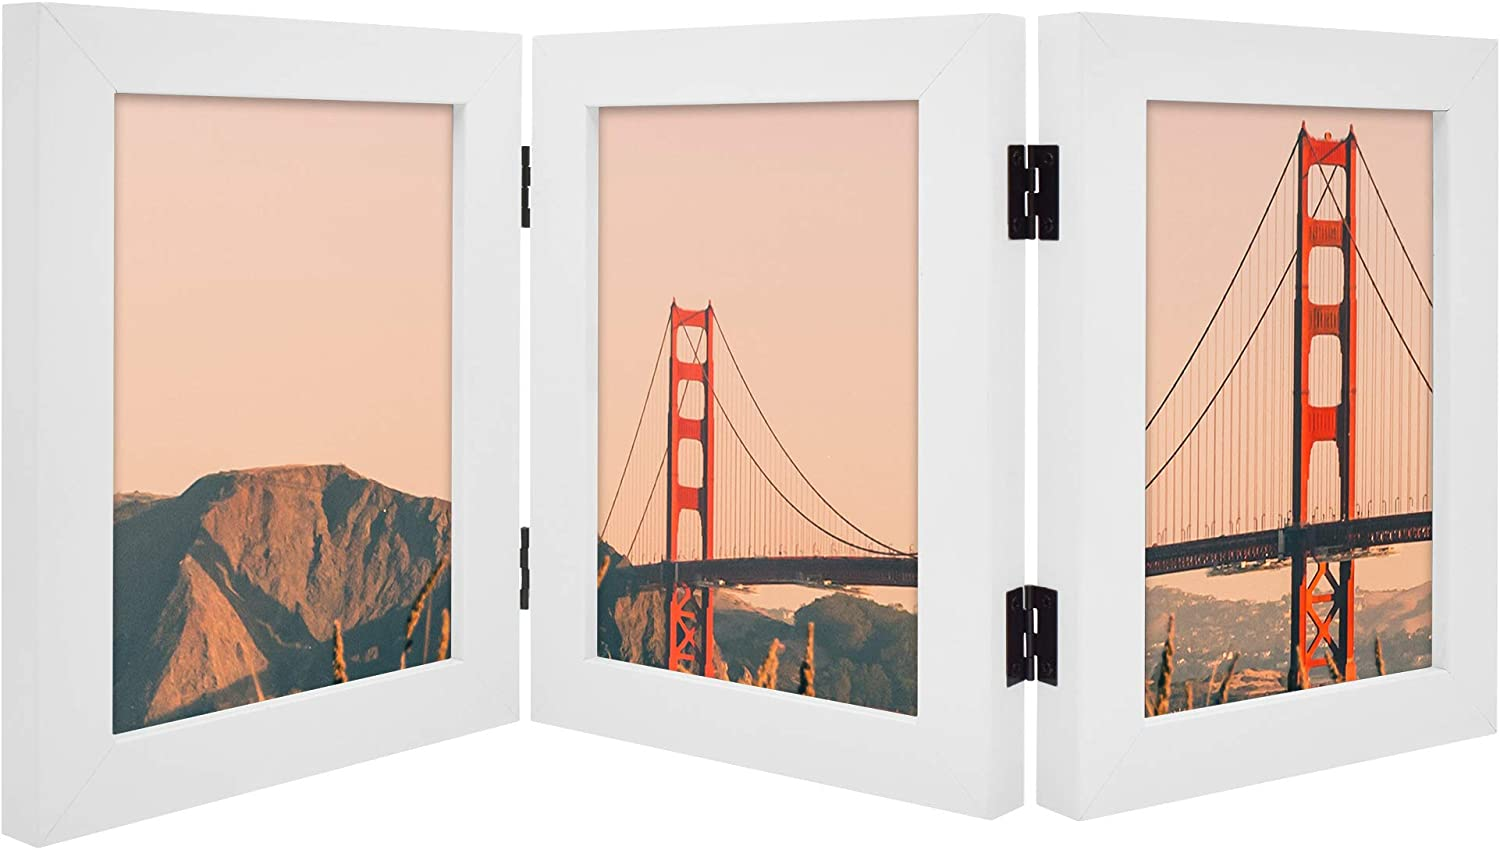 Frametory, Hinged Picture Frame with Glass Front Made to Display Three Pictures, Stands Vertically on Desktop or Table Top (White, 5x7 Triple)